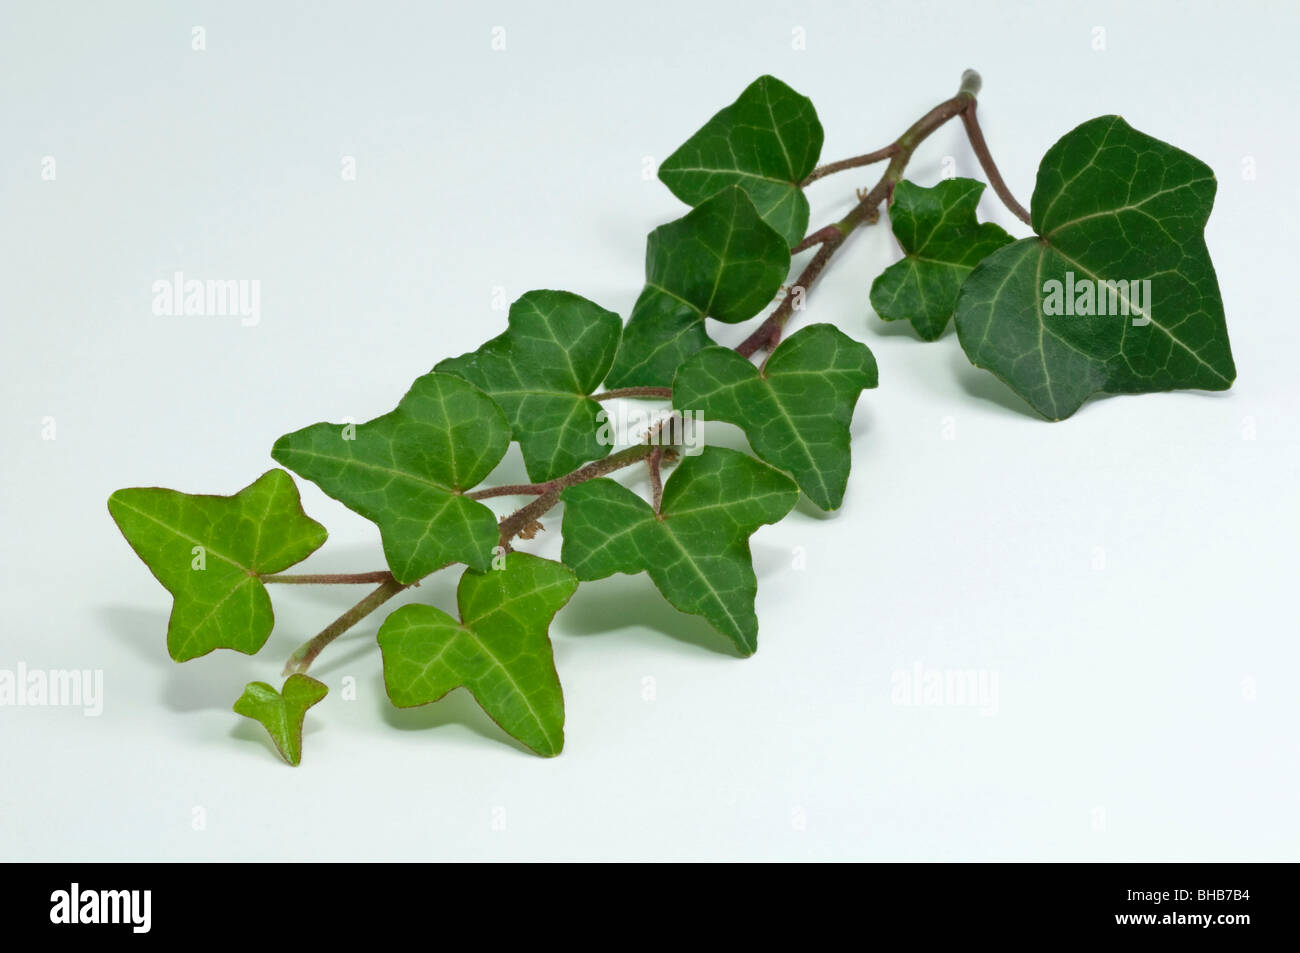 English Ivy Stock Photos & English Ivy Stock Images - Alamy on common plants used in baskets florist, common house plant problems, common household plants, round leaves with ivy, variegated ivy, common names of indoor plants, hedera glacier ivy,